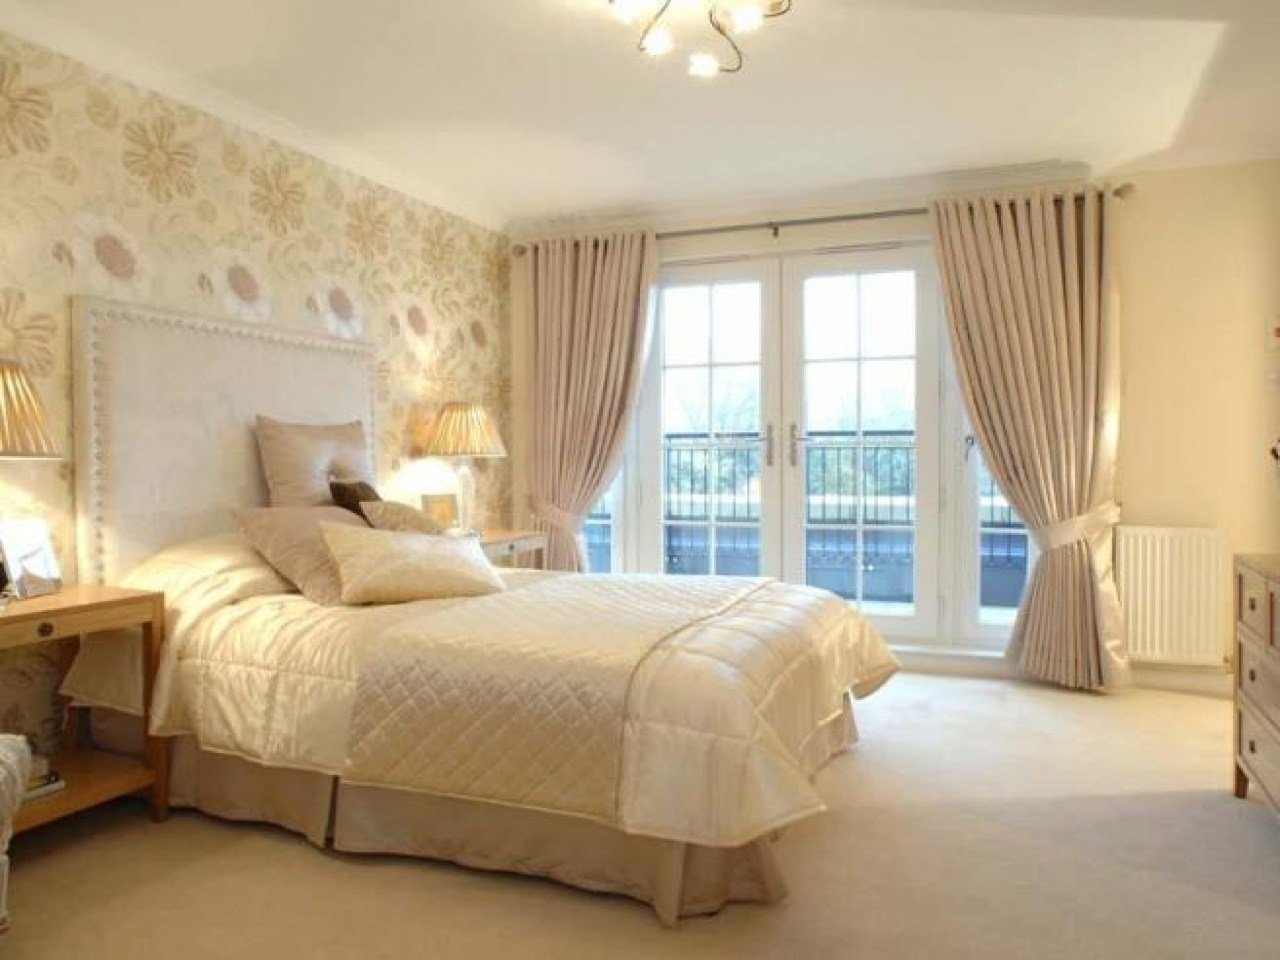 Best Beige Bedroom Ideas Green And Gold Bedroom Gold And Cream Bedroom Ideas Bedroom Designs With Pictures